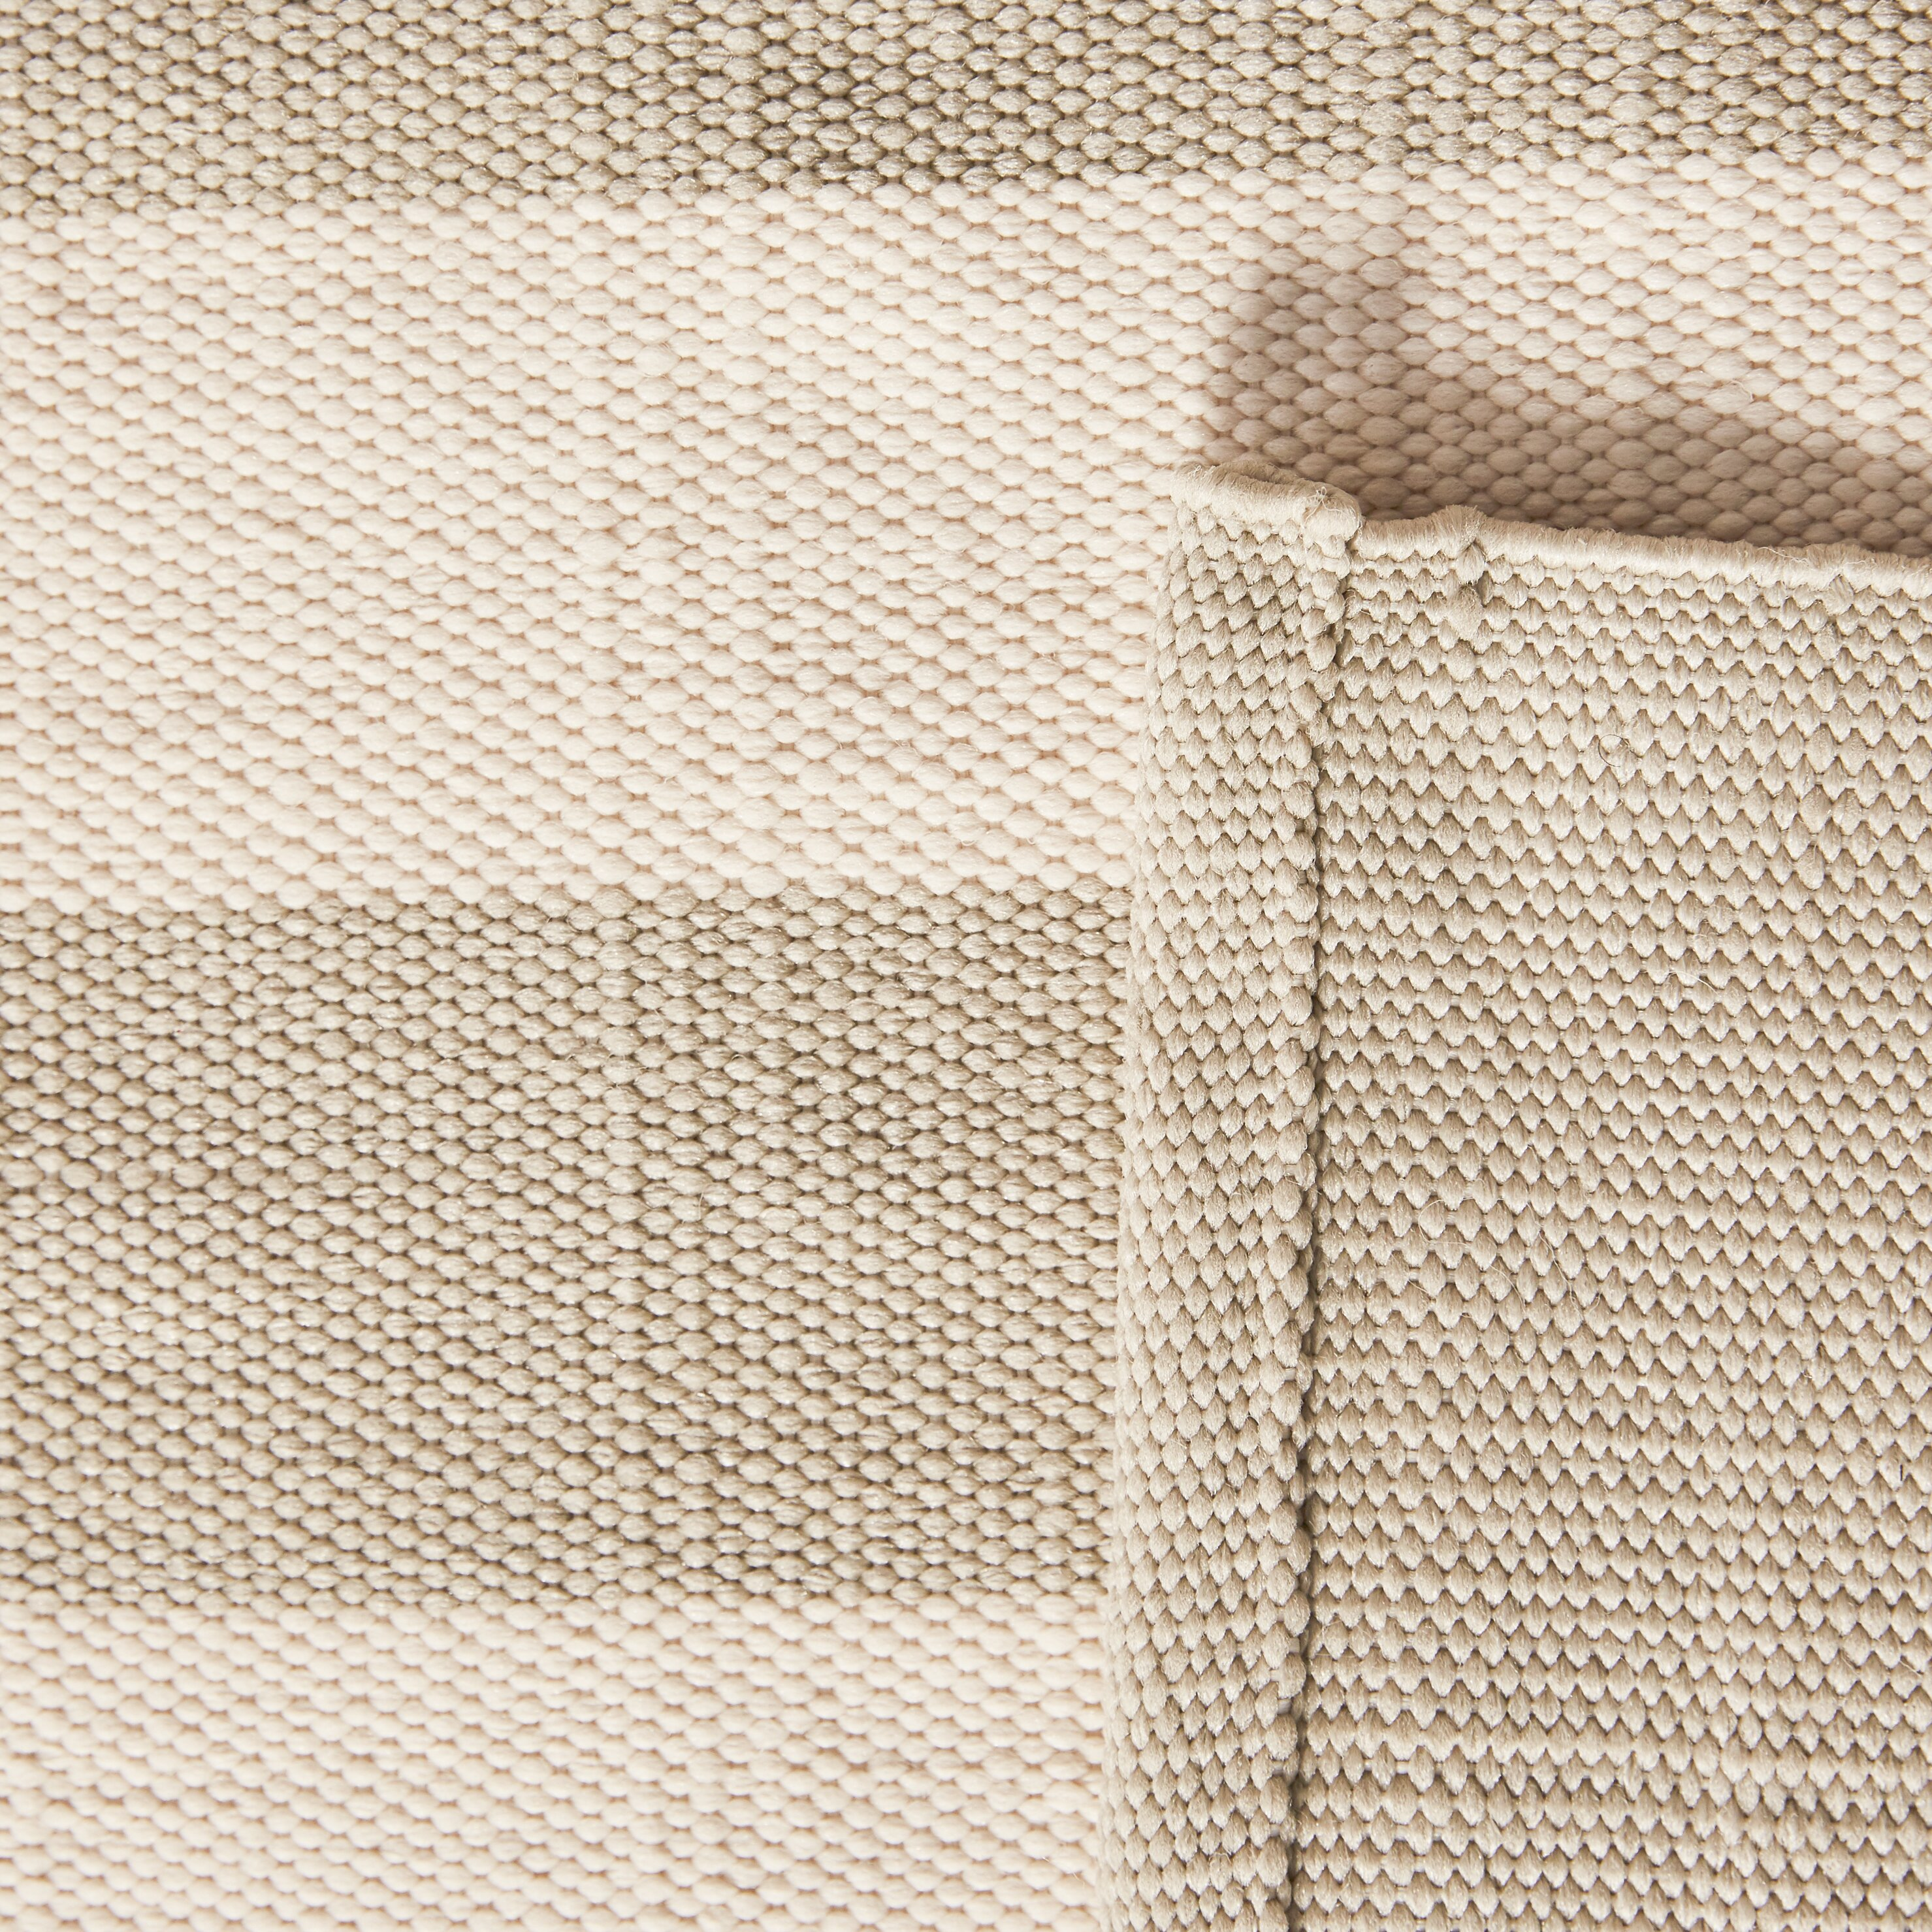 Dash and albert rugs catamaran hand woven platinum ivory for Dash and albert wool rugs